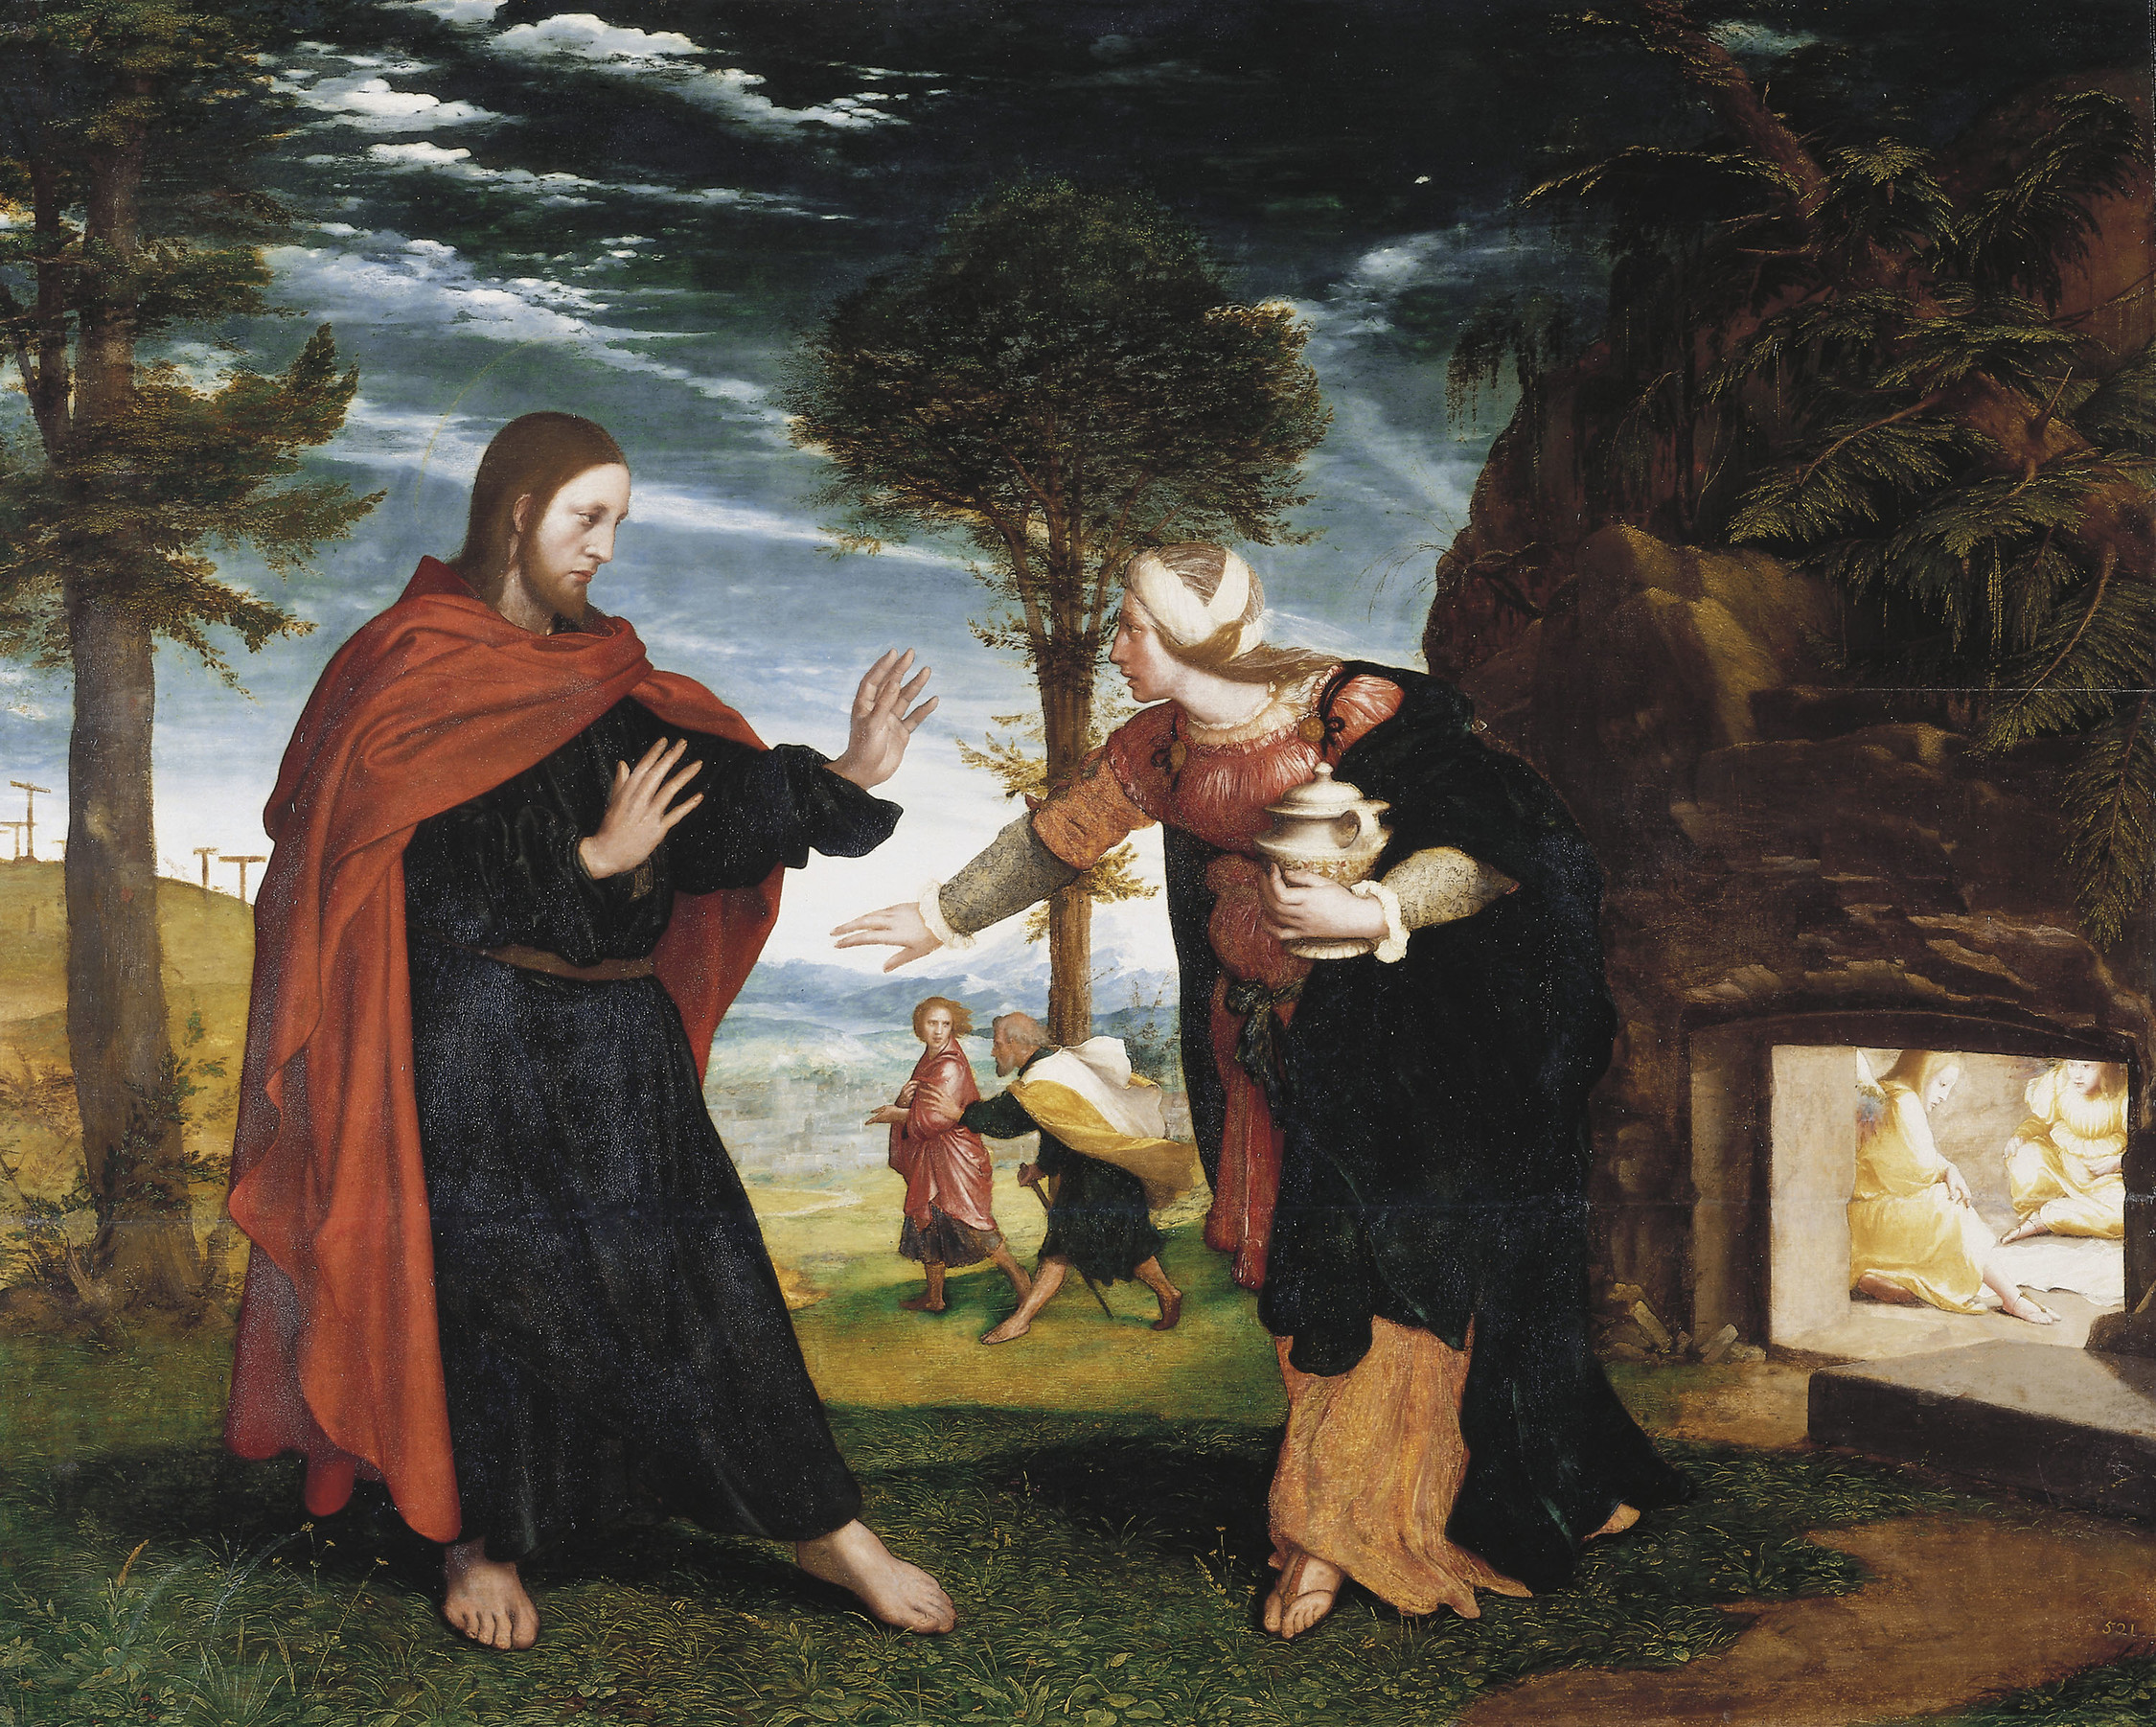 """Painting: """"Noli me tangere"""" (""""Do not touch me""""), by Hans Holbein the Younger, ca. 1527, oil on oak, 76,7 cm x 95,8 cm, Royal Collection, Hampton Court Palace, East Molesey, United Kingdom. The scene is described in John 19:41 to 20:18; confer Song of Songs 3:1-4. The title of the work is pronounced in John 20:17a, a possible reference to Numbers 19:16. The vessel with aromatic preparations which Mary Magdalene brings to process the body of her Teacher, as approved (according to tradition) in Matthew 26:6-13, Mark 14:3-9, Luke 7:36-50 and John 12:1-8, contradicts Jesus' reaction at this point, however. The explanation is that John (19:38-40) and Matthew (28:1b) contradict Luke (23:50-24:1) and Mark (16:1): by mixing the four stories, the picture is contradictory. In academic circles this scene is known as """"The problem of the empty tomb"""", a term that arises from the fact that Mark, theoretically the first synoptic gospel written and foundation for the others, originally ended at verse 8 of chapter 16 (as witnessed by the Codex Sinaiticus, the Codex Vaticanus, the Syriac Sinaitic palimpsest, much of the Armenian Manuscripts, the Canons of Eusebius, etc.). The next verse, the number 9, which puts forward for the first time the issue of an apparition of Jesus of Nazareth to Mary Magdalene (without even specifying where or under what circumstances), as well as the subsequent verses, with their multiple and conflicting historical variants, were added later by other scribes. One explanation for this apocryphal action was """"vox populi"""" among the Jews of the time, as evidenced in Matthew 28:11-15. If so, the psychological suffering of Mary, called Magdalene, whom Jesus healed of """"seven devils"""", would have had no end. Credit: Hans Holbein the Younger, via The Royal Collection Trust, available at http://www.royalcollection.org.uk. Photography Copyright © 2013 Her Majesty Queen Elizabeth II. All rights reserved. This image file is hosted in computer servers of The Royal Collectio"""